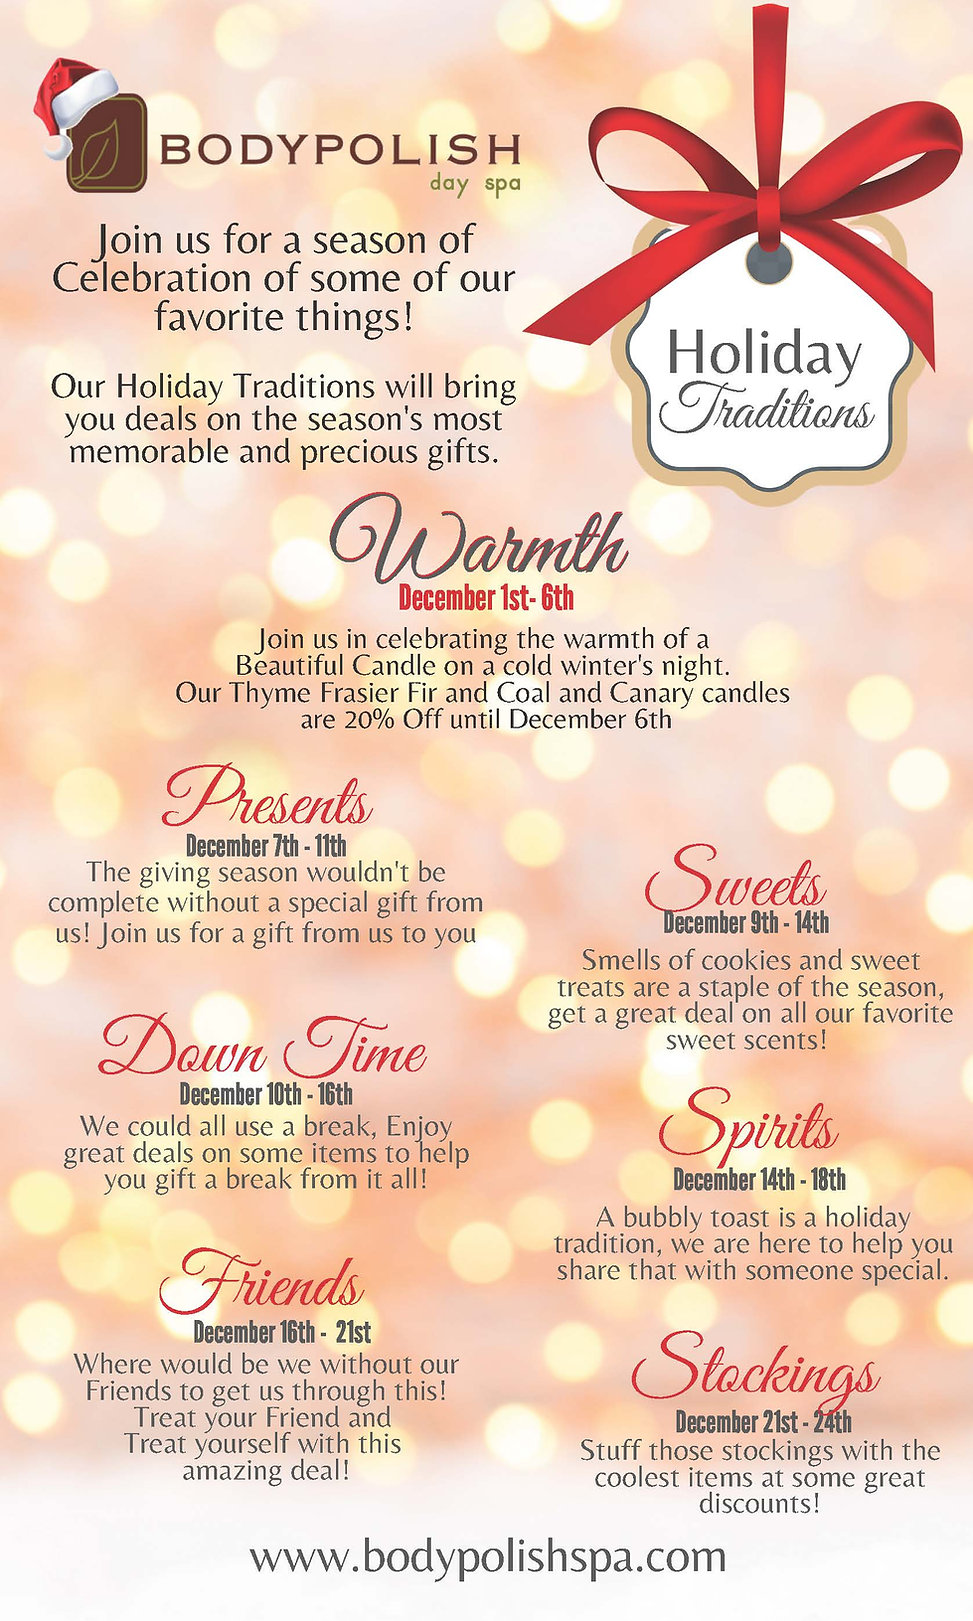 Holiday Traditions Teaser Revised.jpg